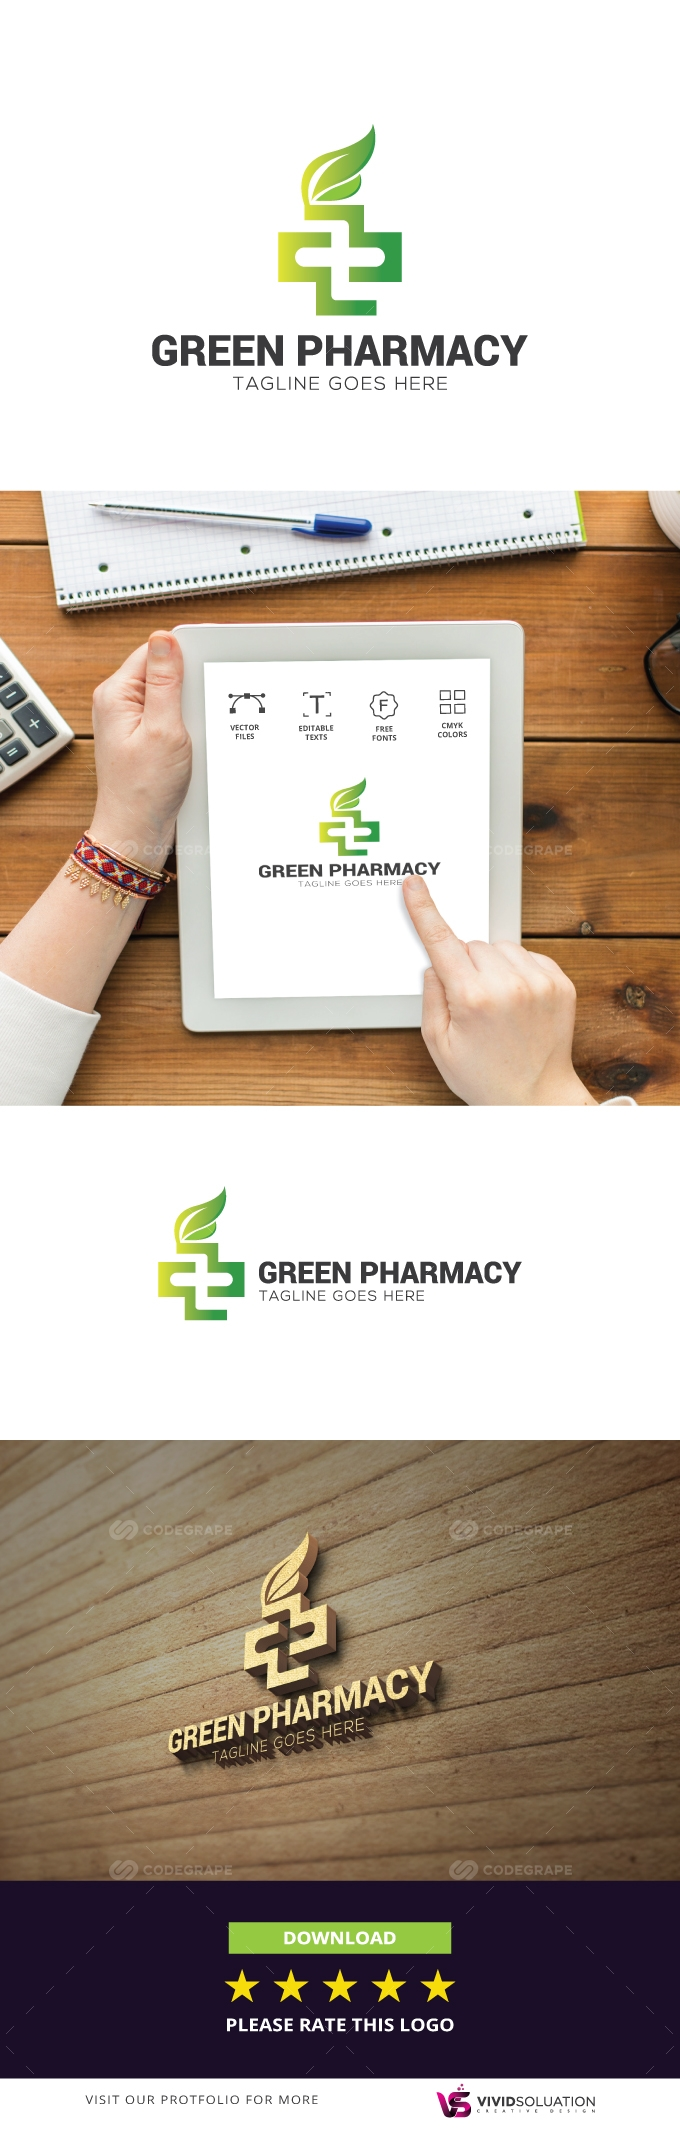 Pharmacy Logo Design